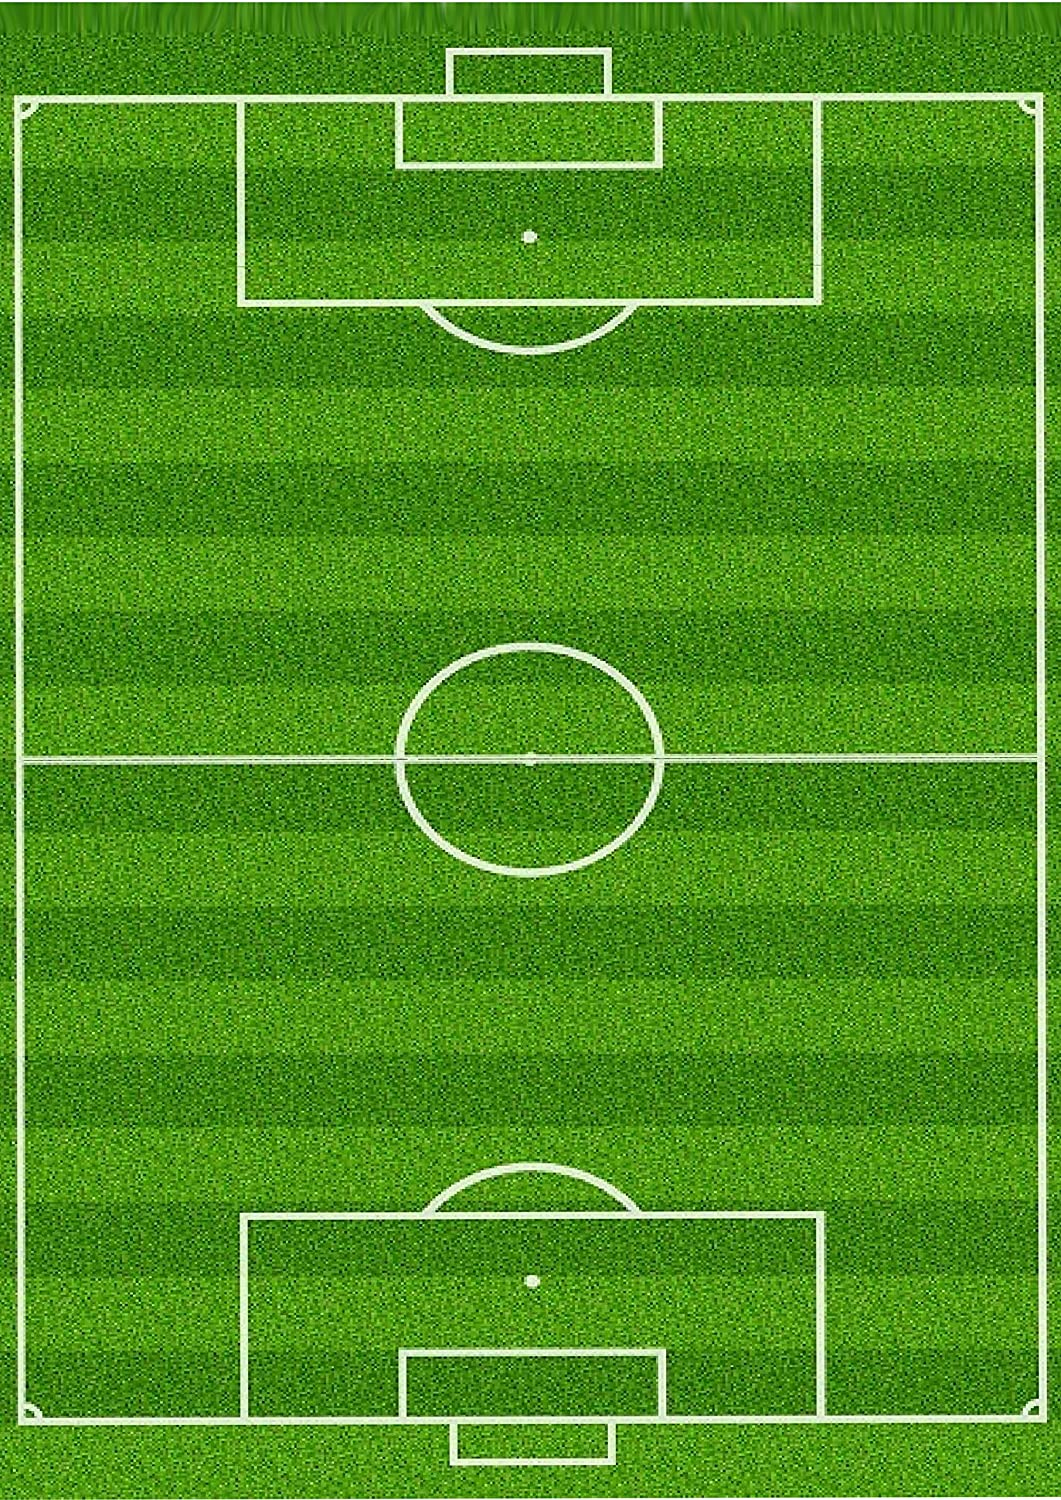 1 x A4 Printed Football Pitch Wallpaper Decor Icing Sheet Edible Cake Topper Decorated Sheet - Perfect for Large Cakes to create a football scene Top That